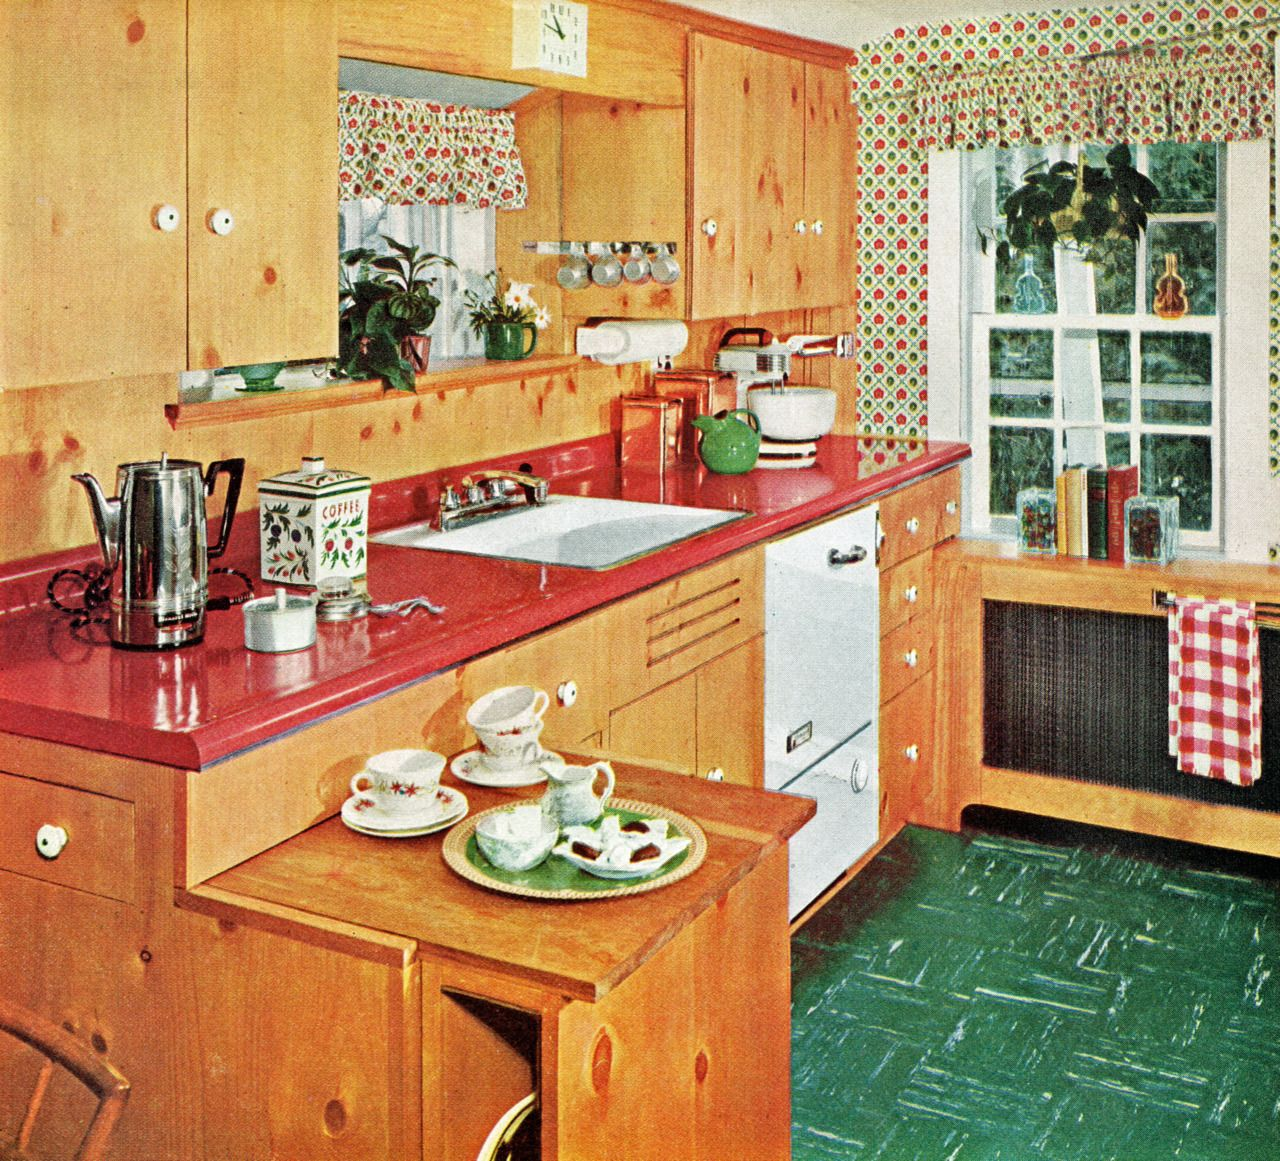 1950s Kitchen Google Search Ah Dustin S Dream 50s Kitchen No Painted Cabinets Amp A Crazy Colored Knotty Pine Kitchen Pine Kitchen Cabinets Pine Kitchen